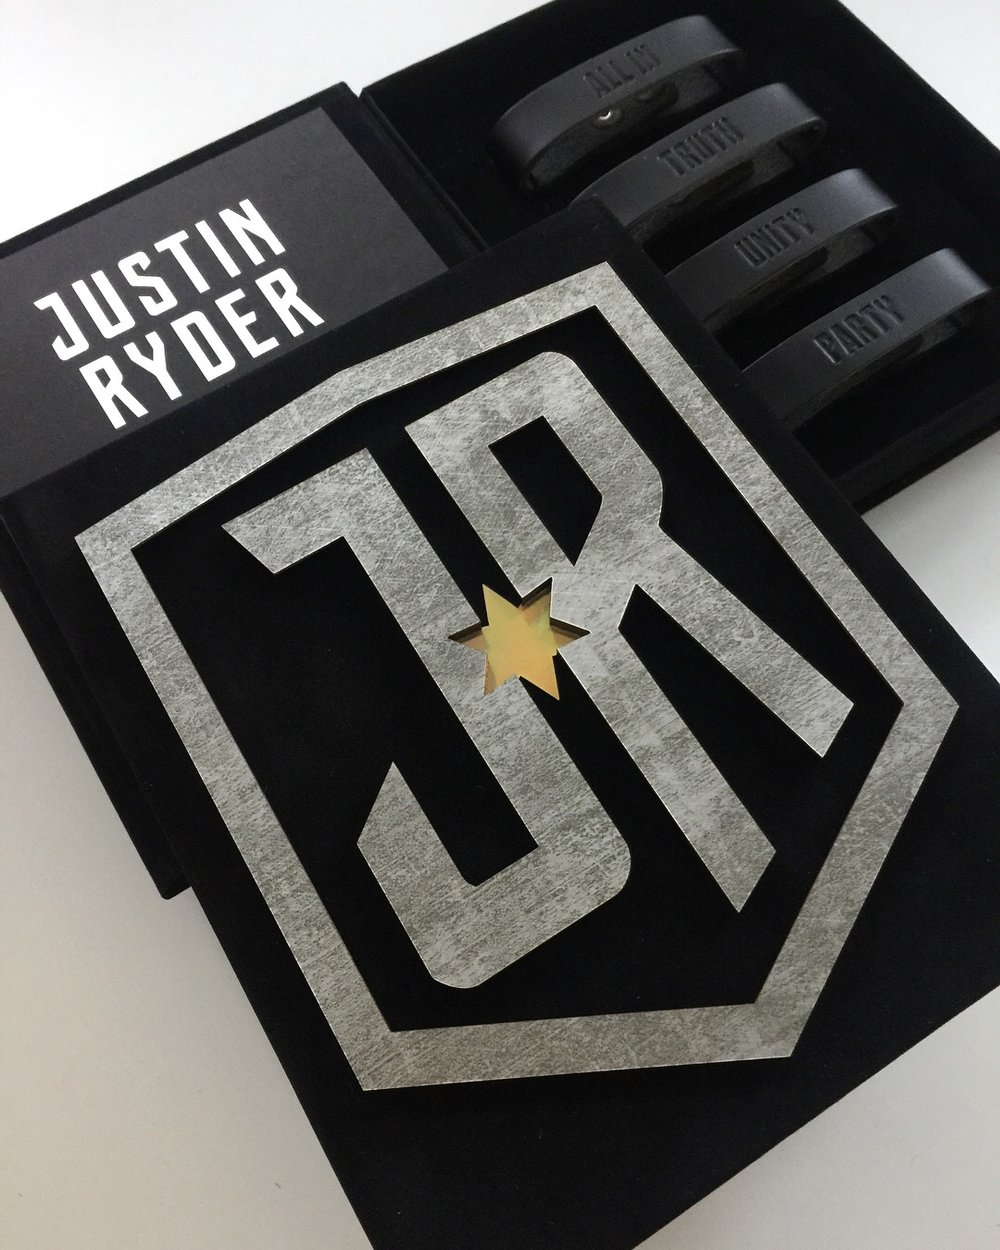 Justin  \\ When your client wants a Justice League-inspired invitation, you go ALL IN. Distressed Chroma shield with holographic star mounted to the top of the black suede invitation box and four leather bands inside: ALL IN, TRUTH, UNITY, PARTY. We even made a life-size shield for the party!